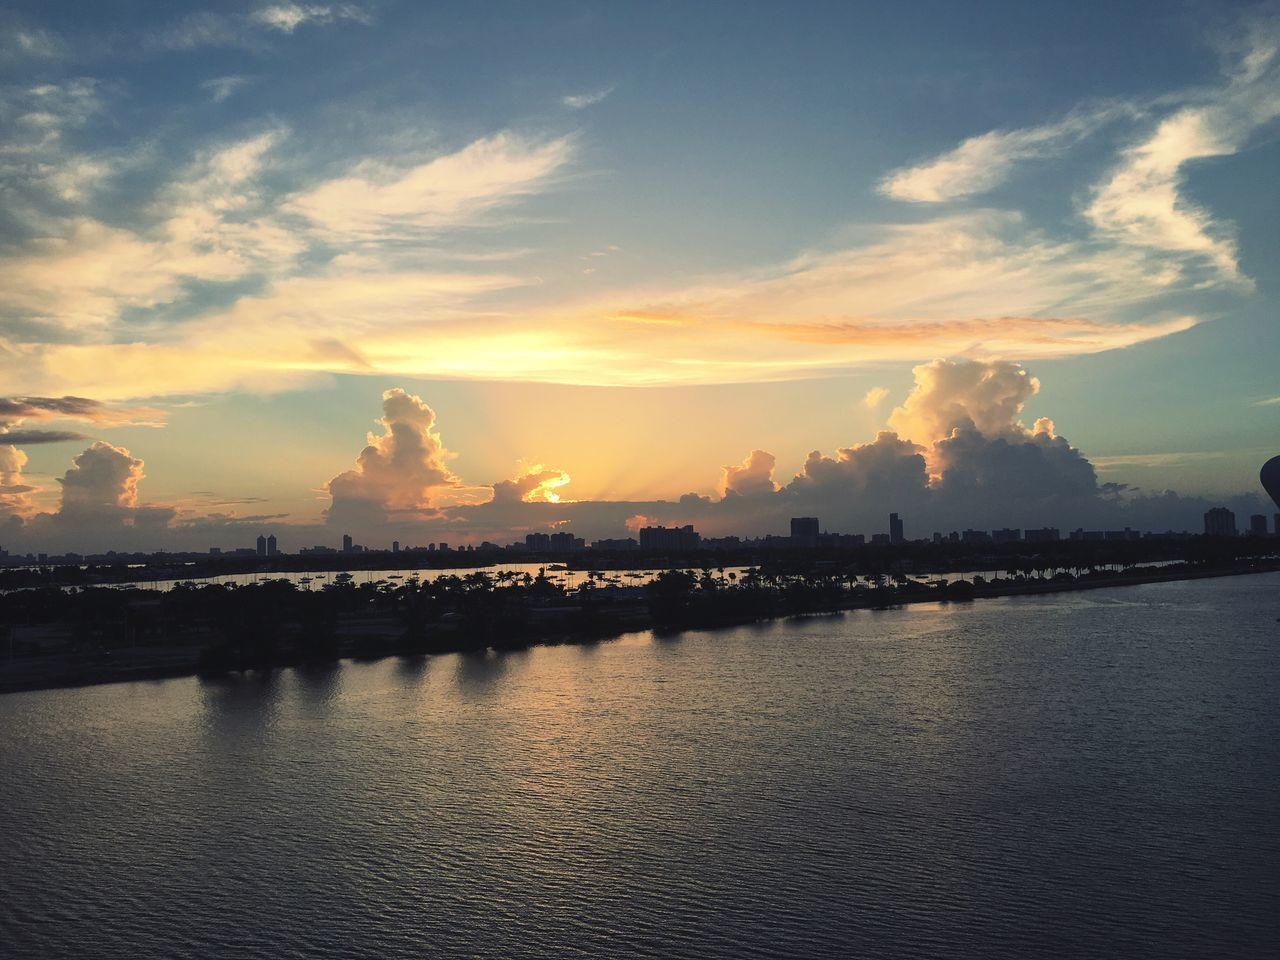 sky, cloud - sky, sunset, water, waterfront, river, nature, scenics, beauty in nature, outdoors, no people, architecture, building exterior, tranquility, built structure, city, cityscape, day